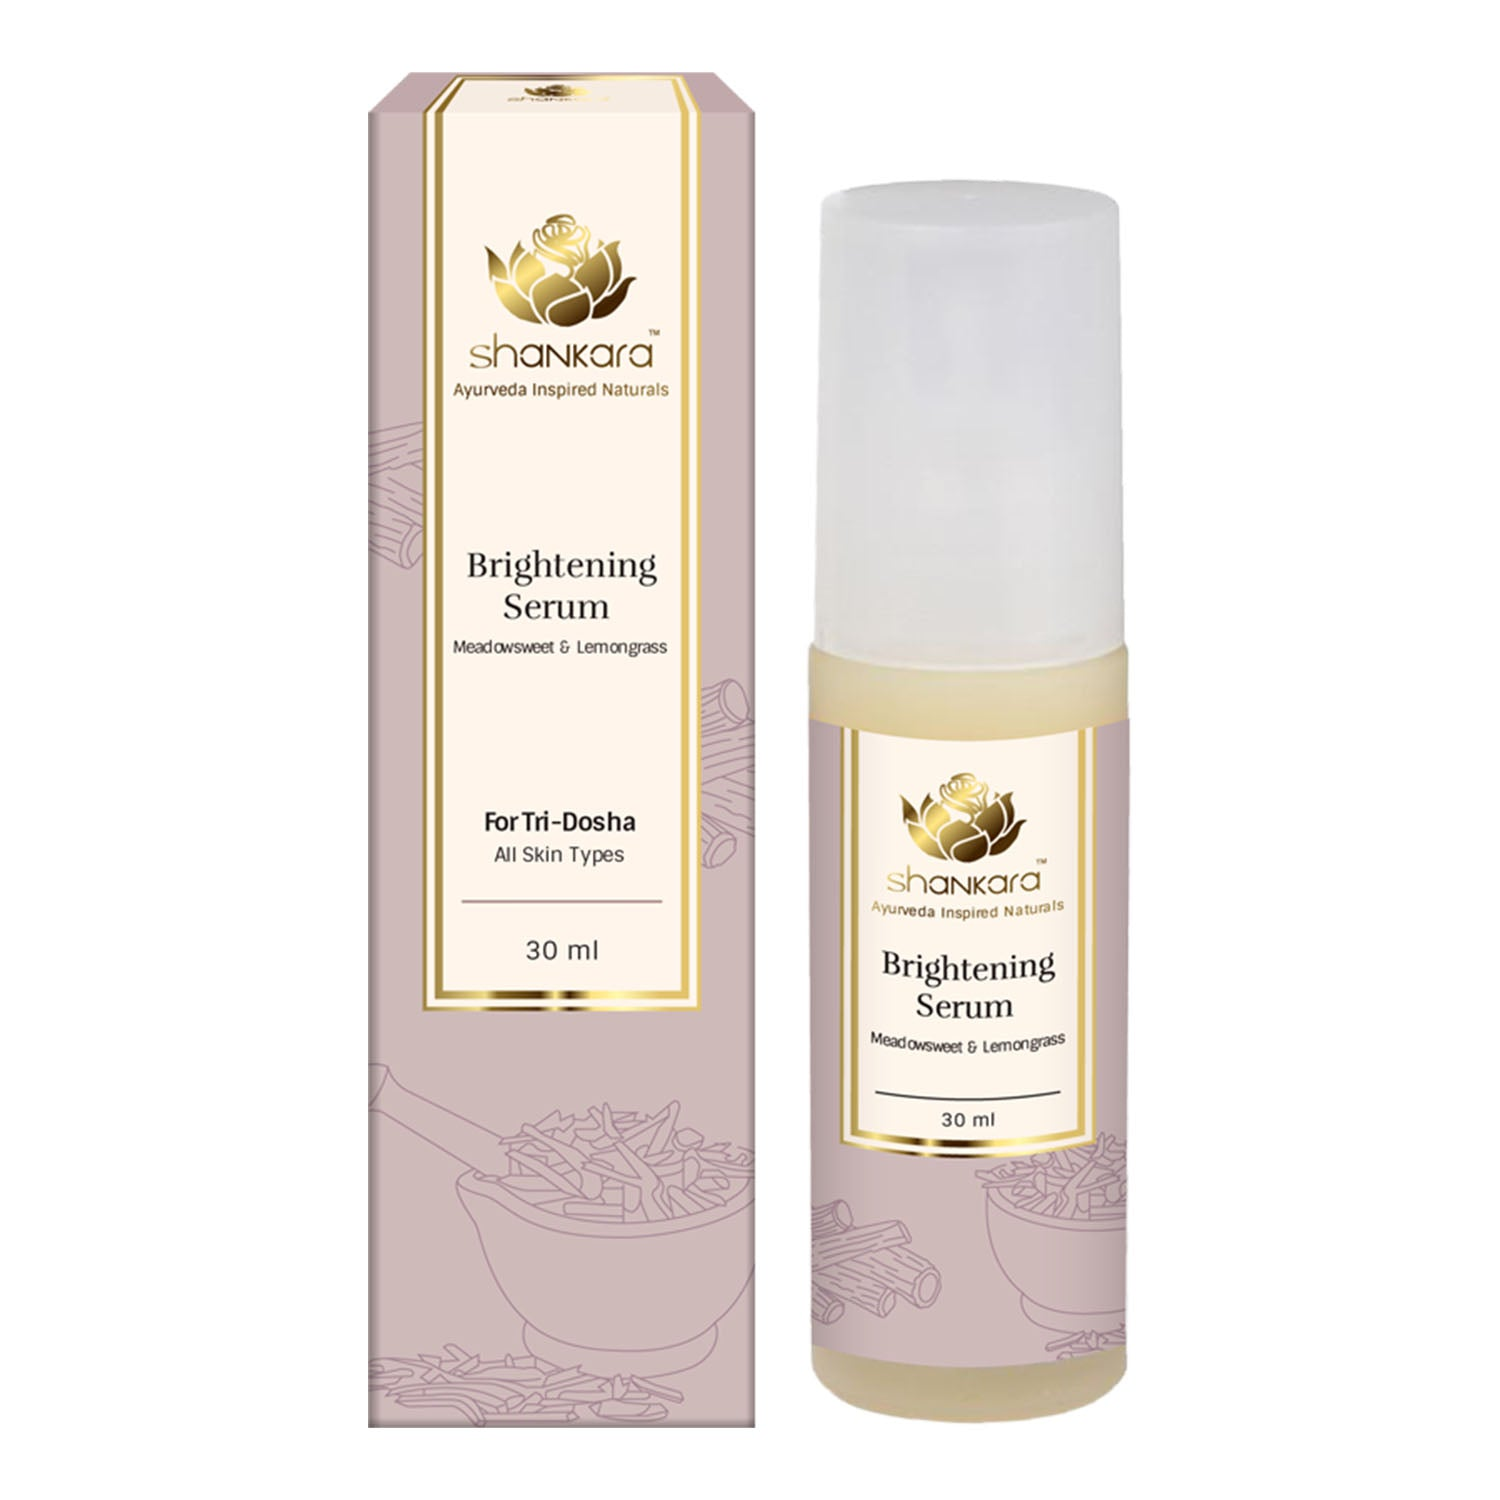 Shankara Brightening Serum 30ml